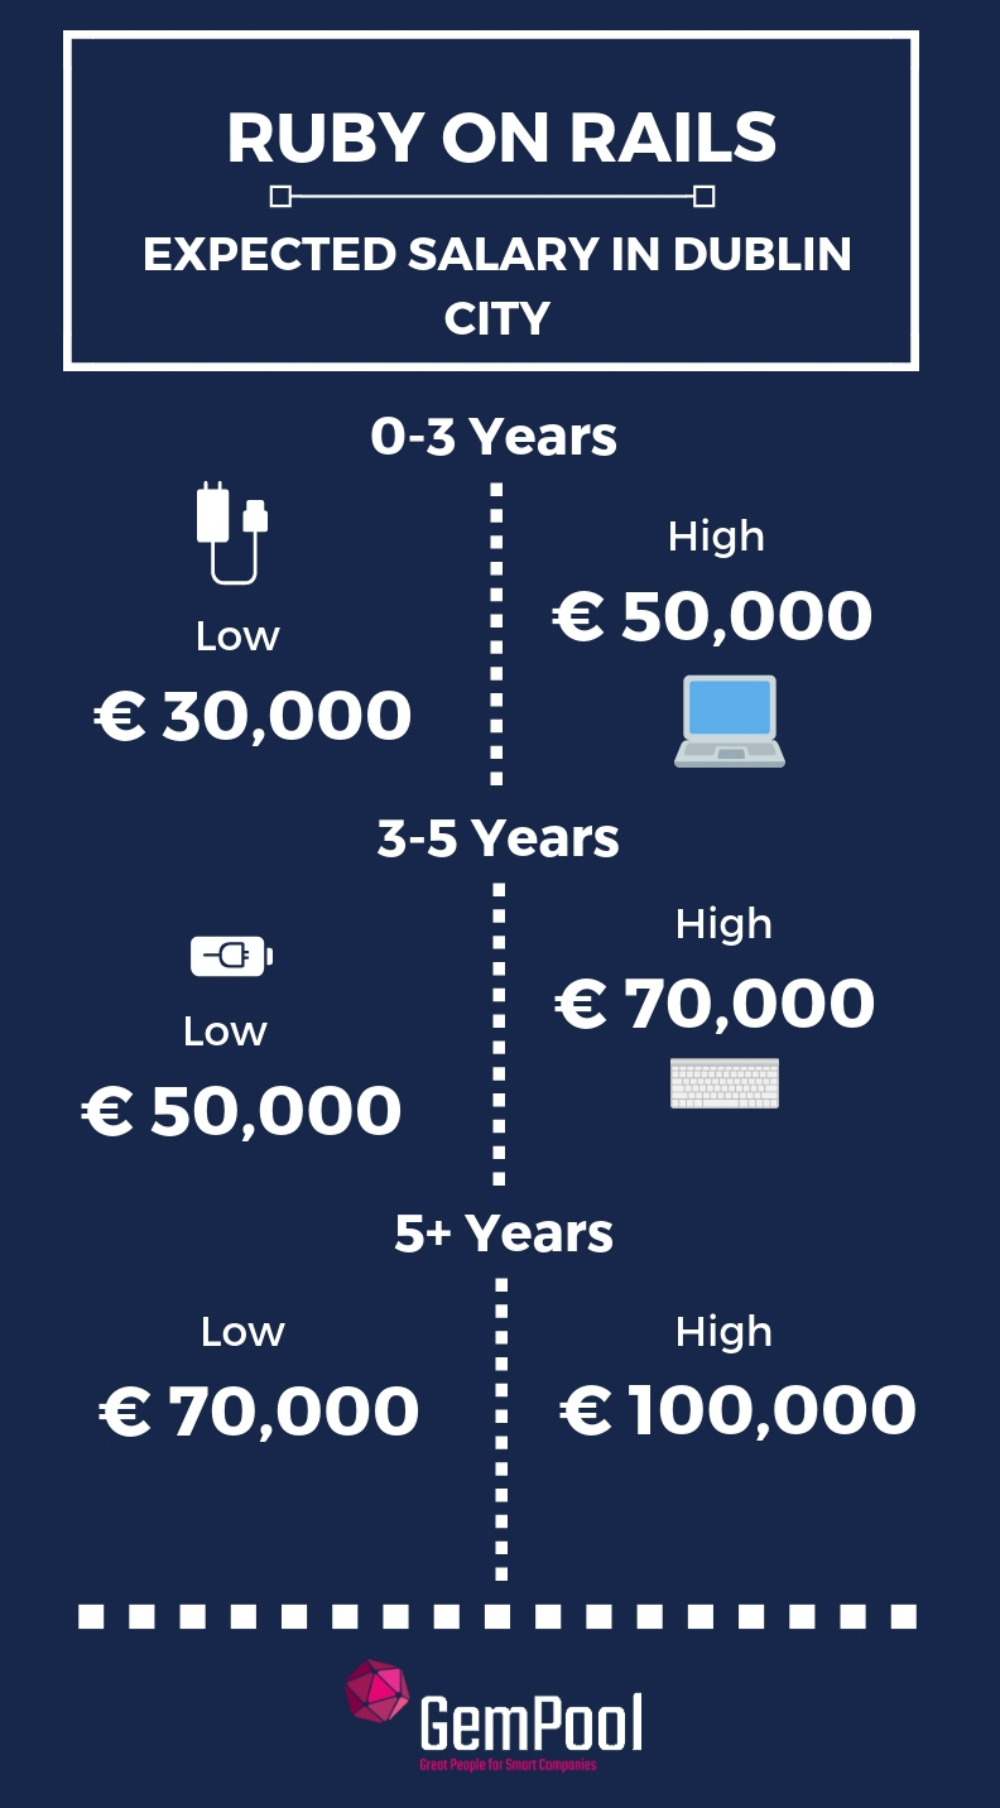 Ruby on rails developers salary in ireland